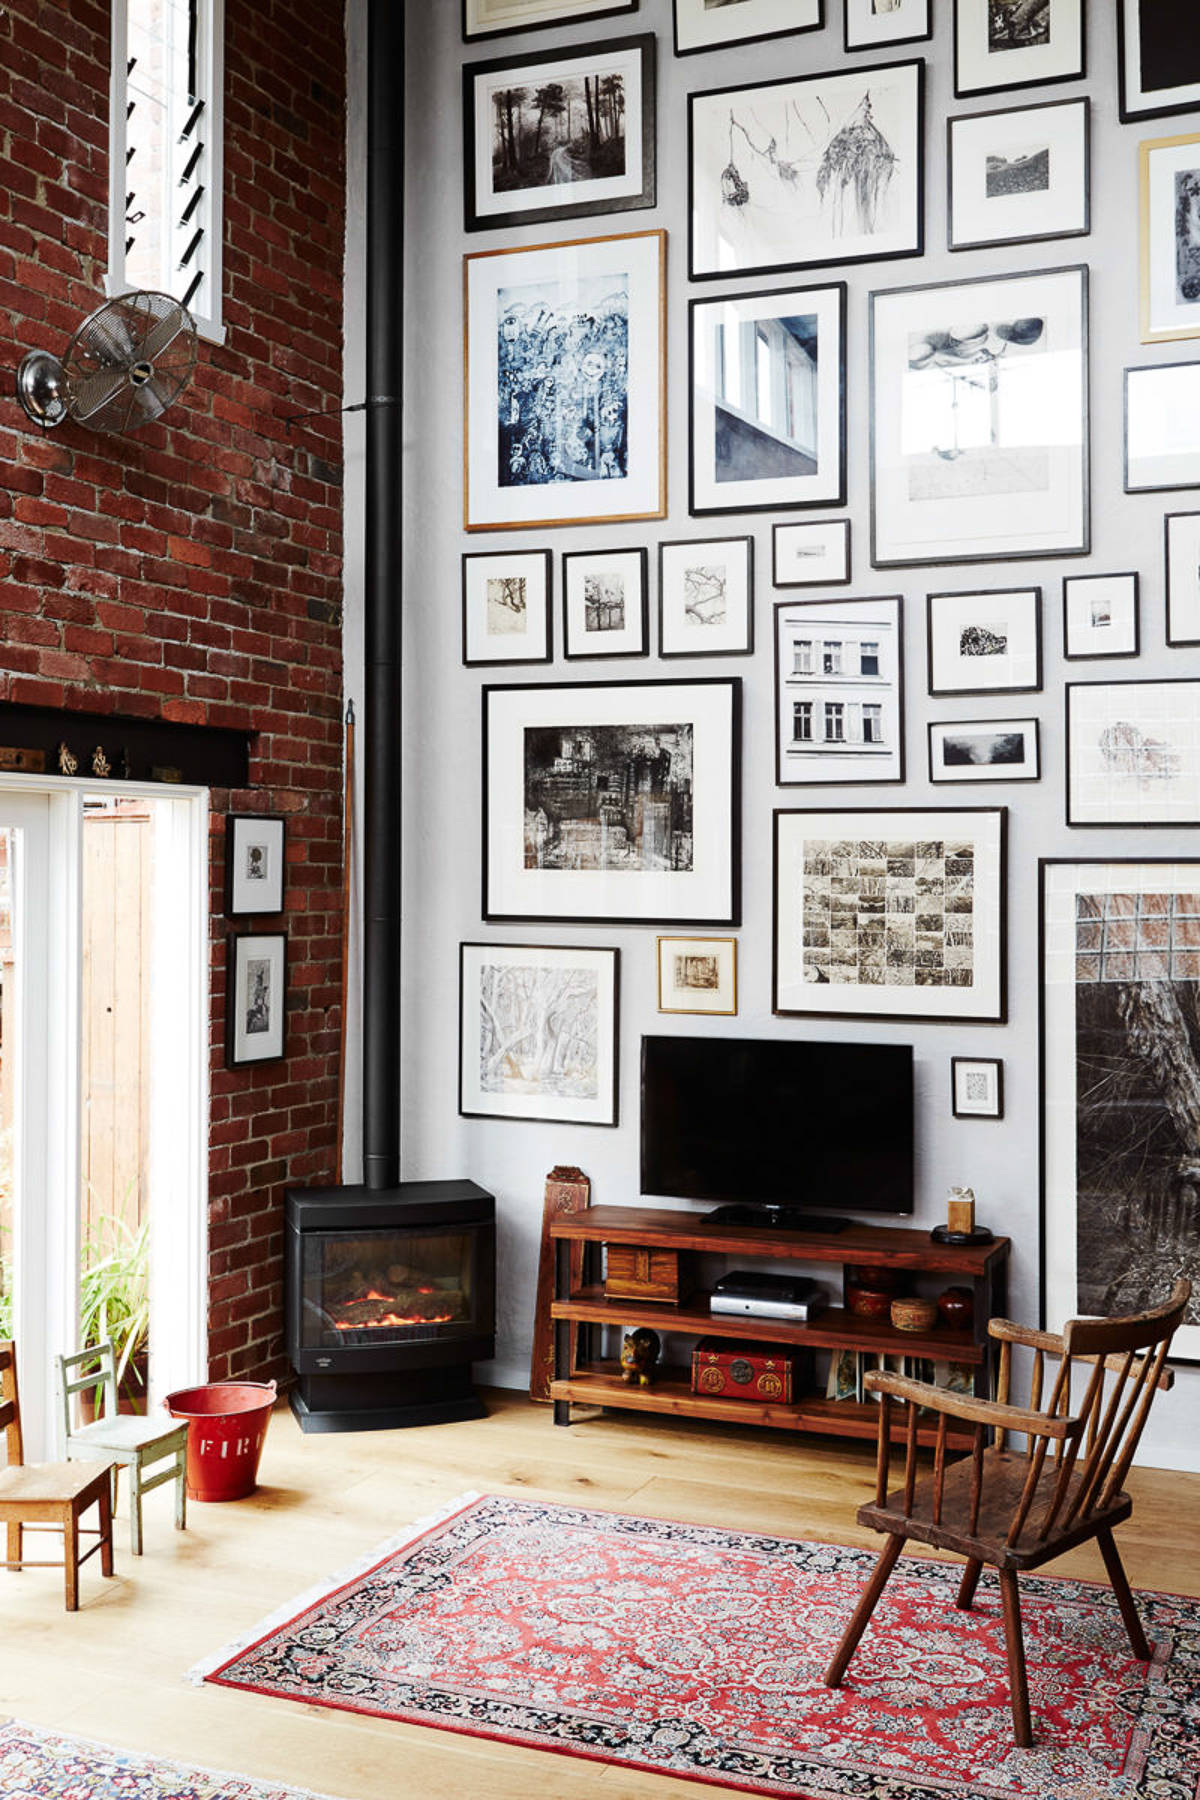 Home Inspiration Gallery Walls The Green Eyed Girl